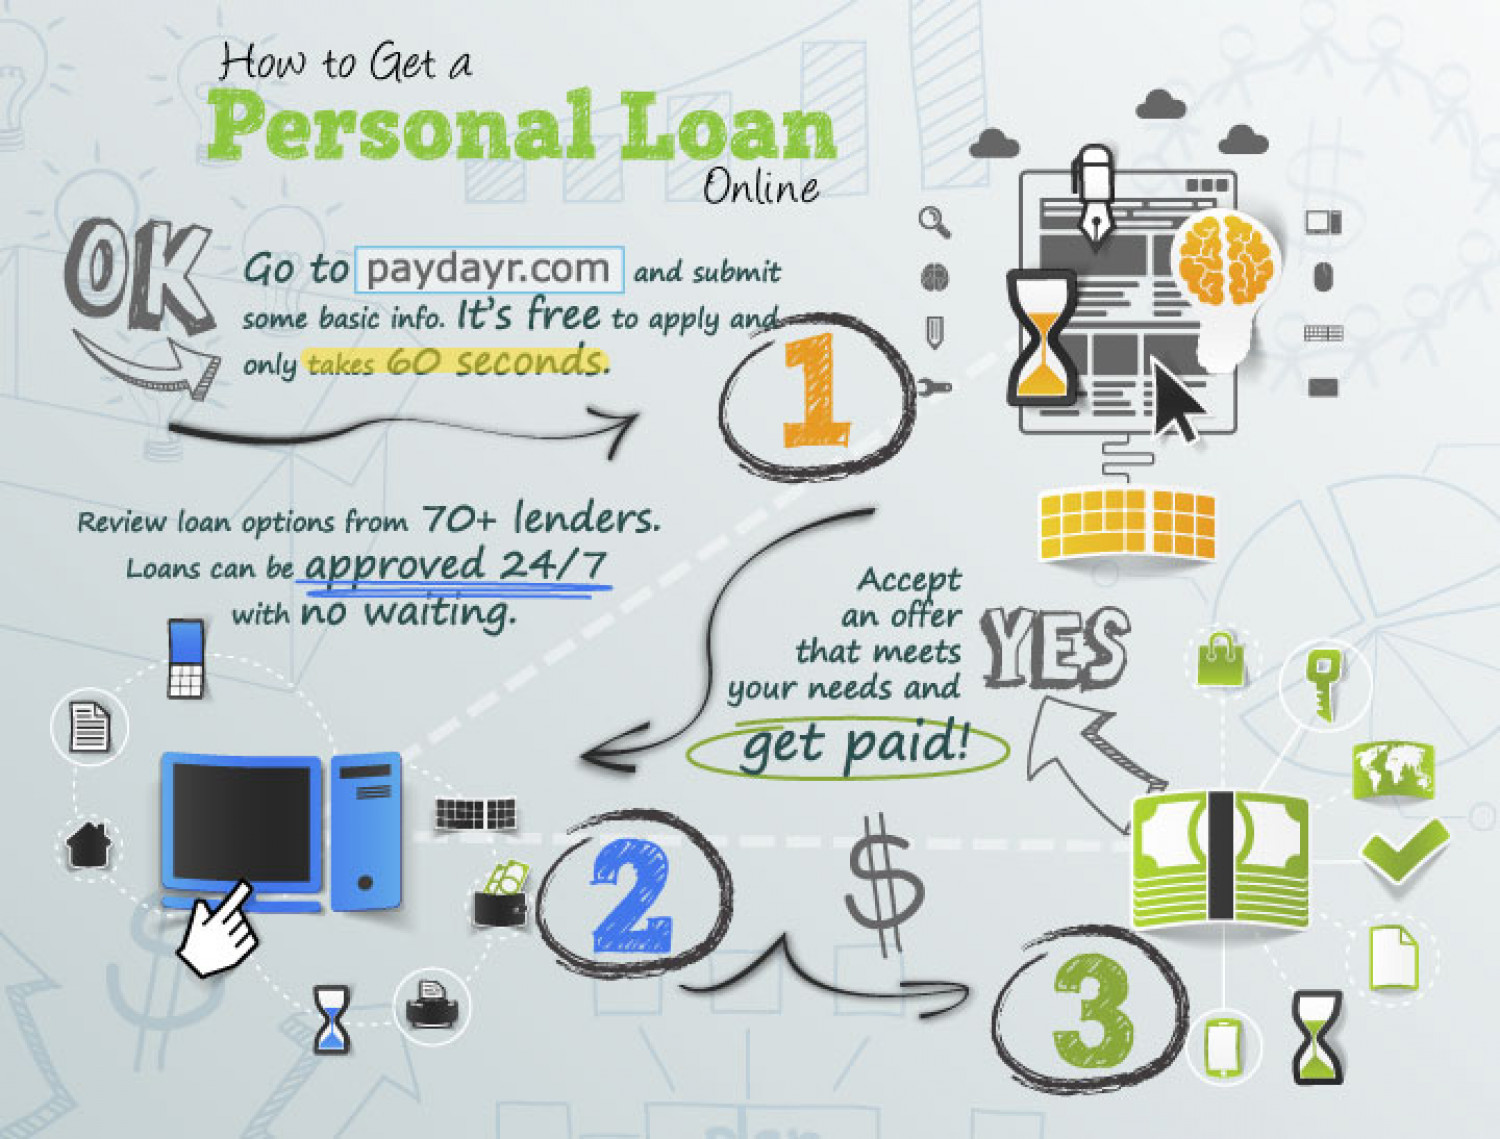 How to Get a Personal Loan Online   Visual.ly